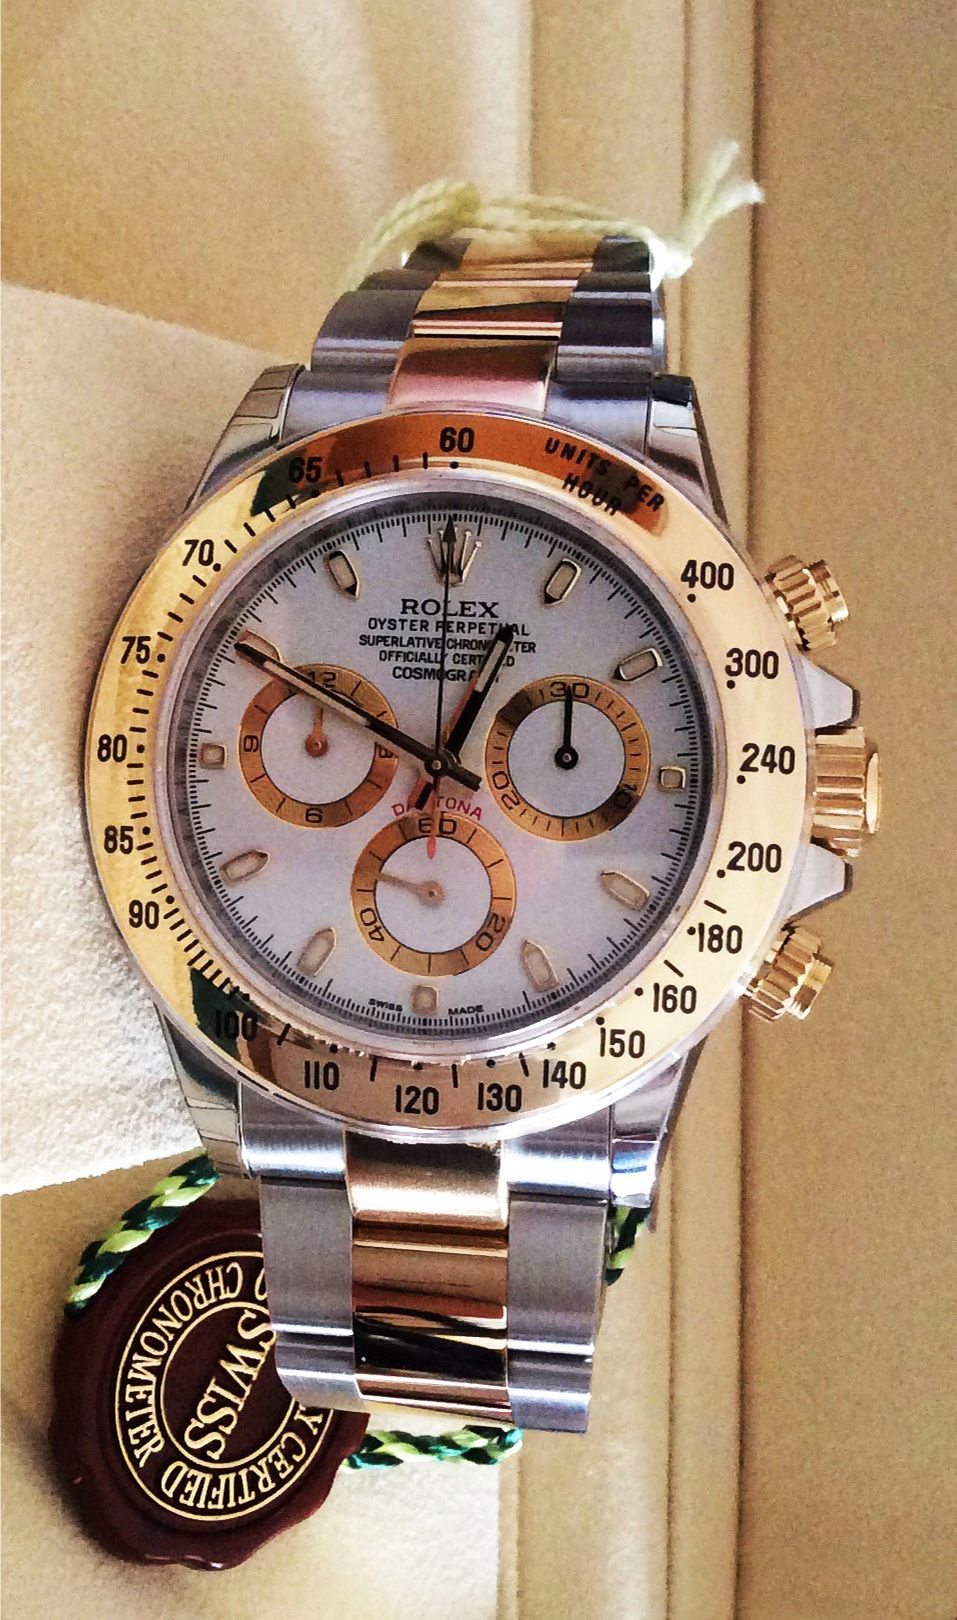 2dfa8c197d5  Rolex  Daytona 116523  swisswatchdealers - The central sweep seconds hand  allows an accurate reading of 1 8 second